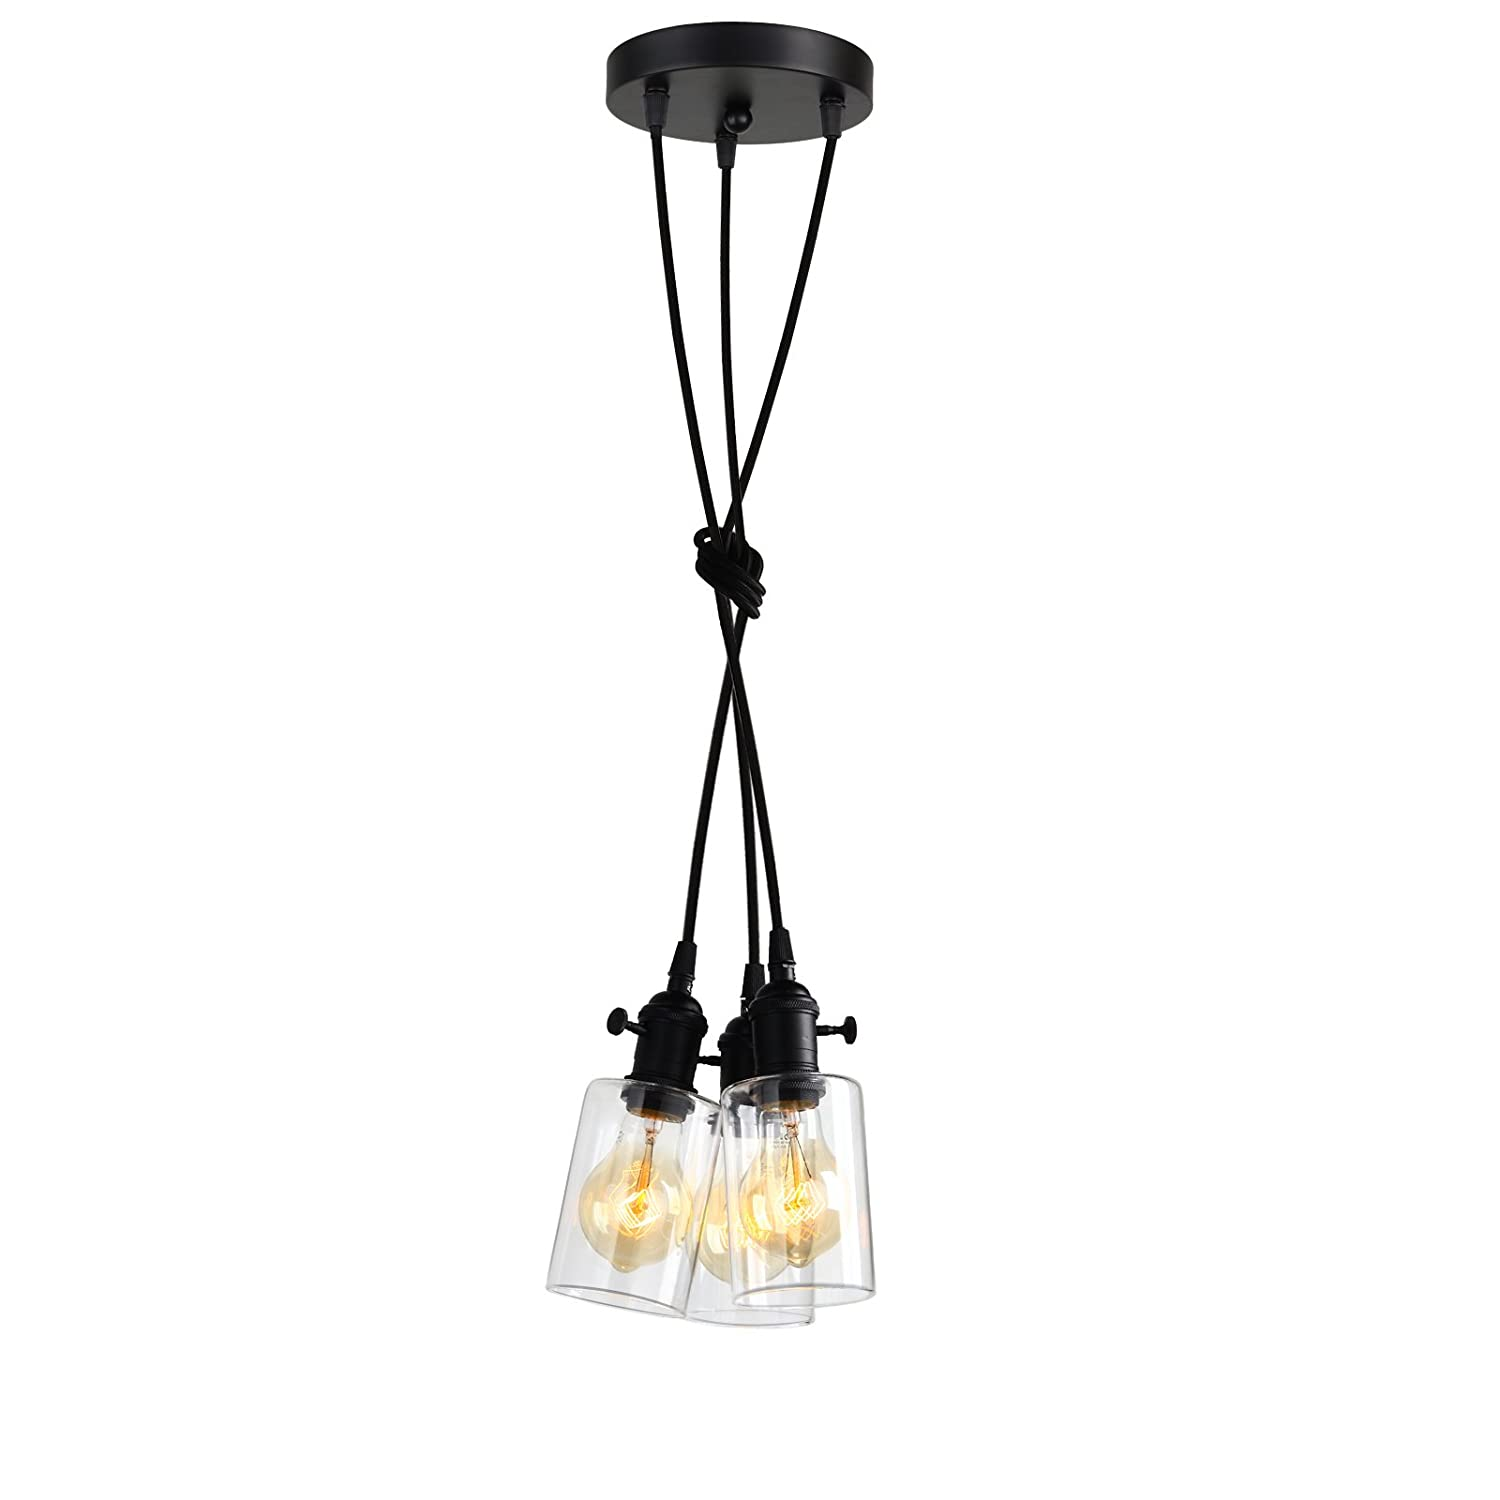 Pathson Industrial Mini Pendant Lighting, 3 Lights Vintage Simple Home Ceiling Light Fixture Flush Mount with Adjustable Textile Cord Pendant Cluster Light